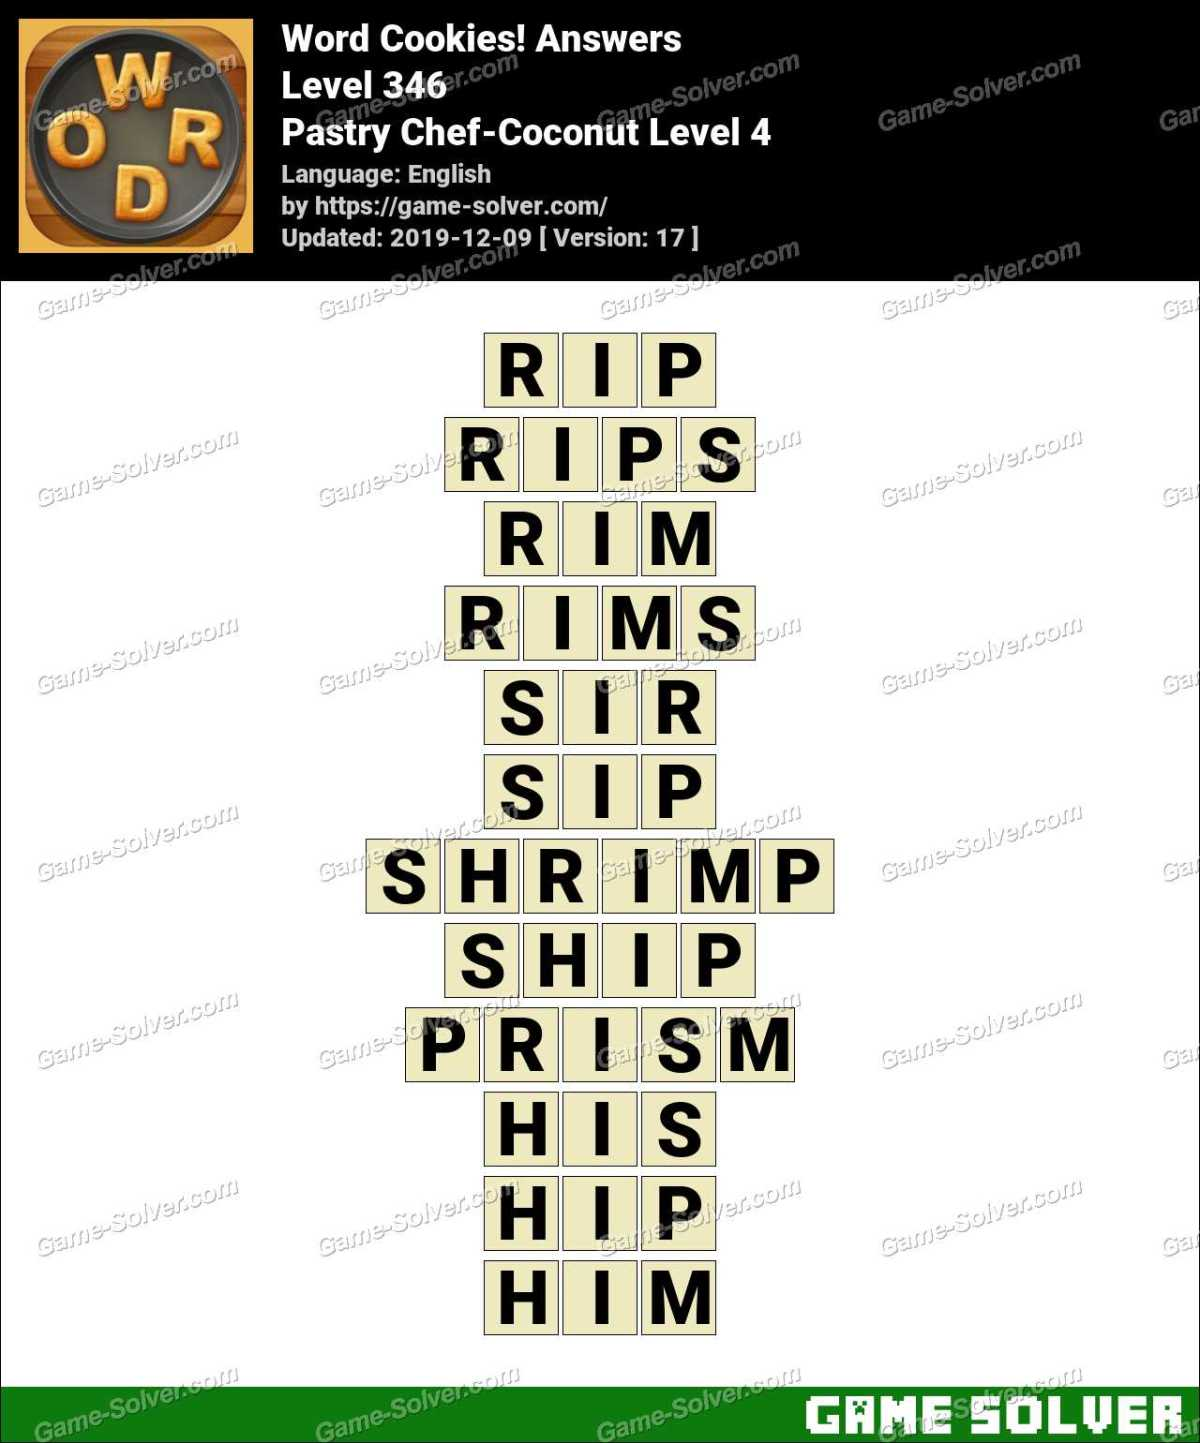 Word Cookies Pastry Chef-Coconut Level 4 Answers